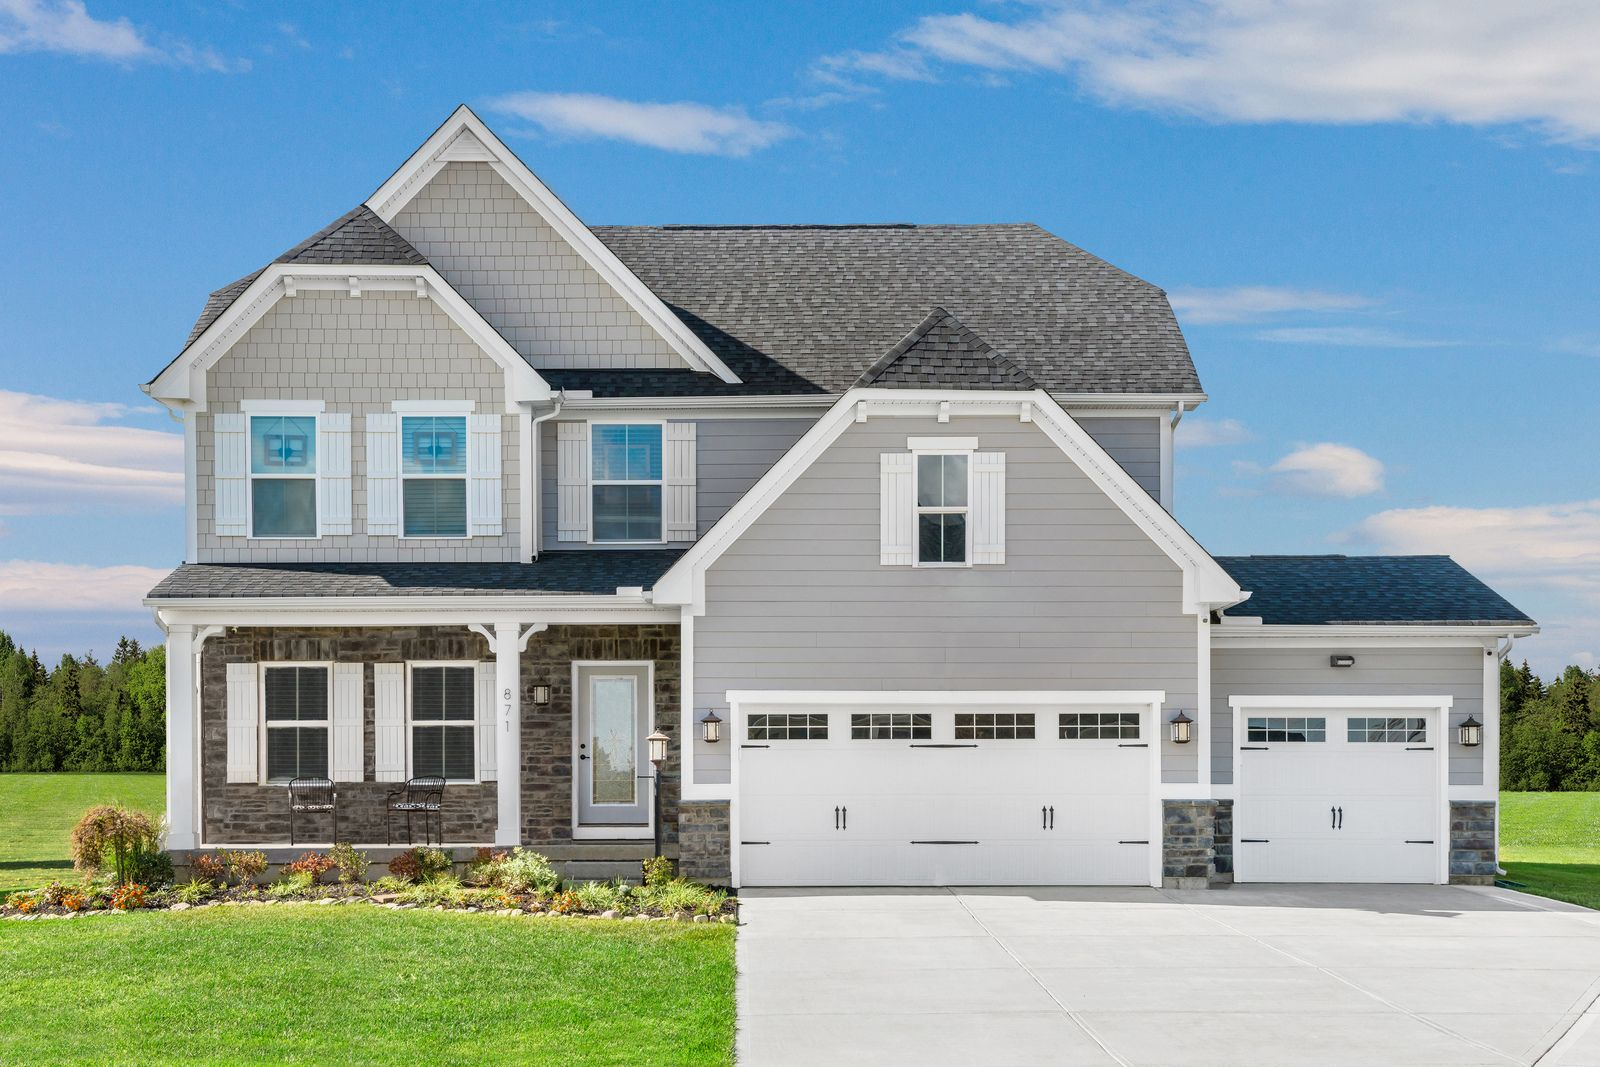 WELCOME TO WOODBOURNE MANOR - THE BEST VALUE IN FREDERICK:Frederick's best value - Get more for your money! Spacious single family homes, many included luxury features, and low monthly payments with no city taxes!Click here to schedule your visit today!